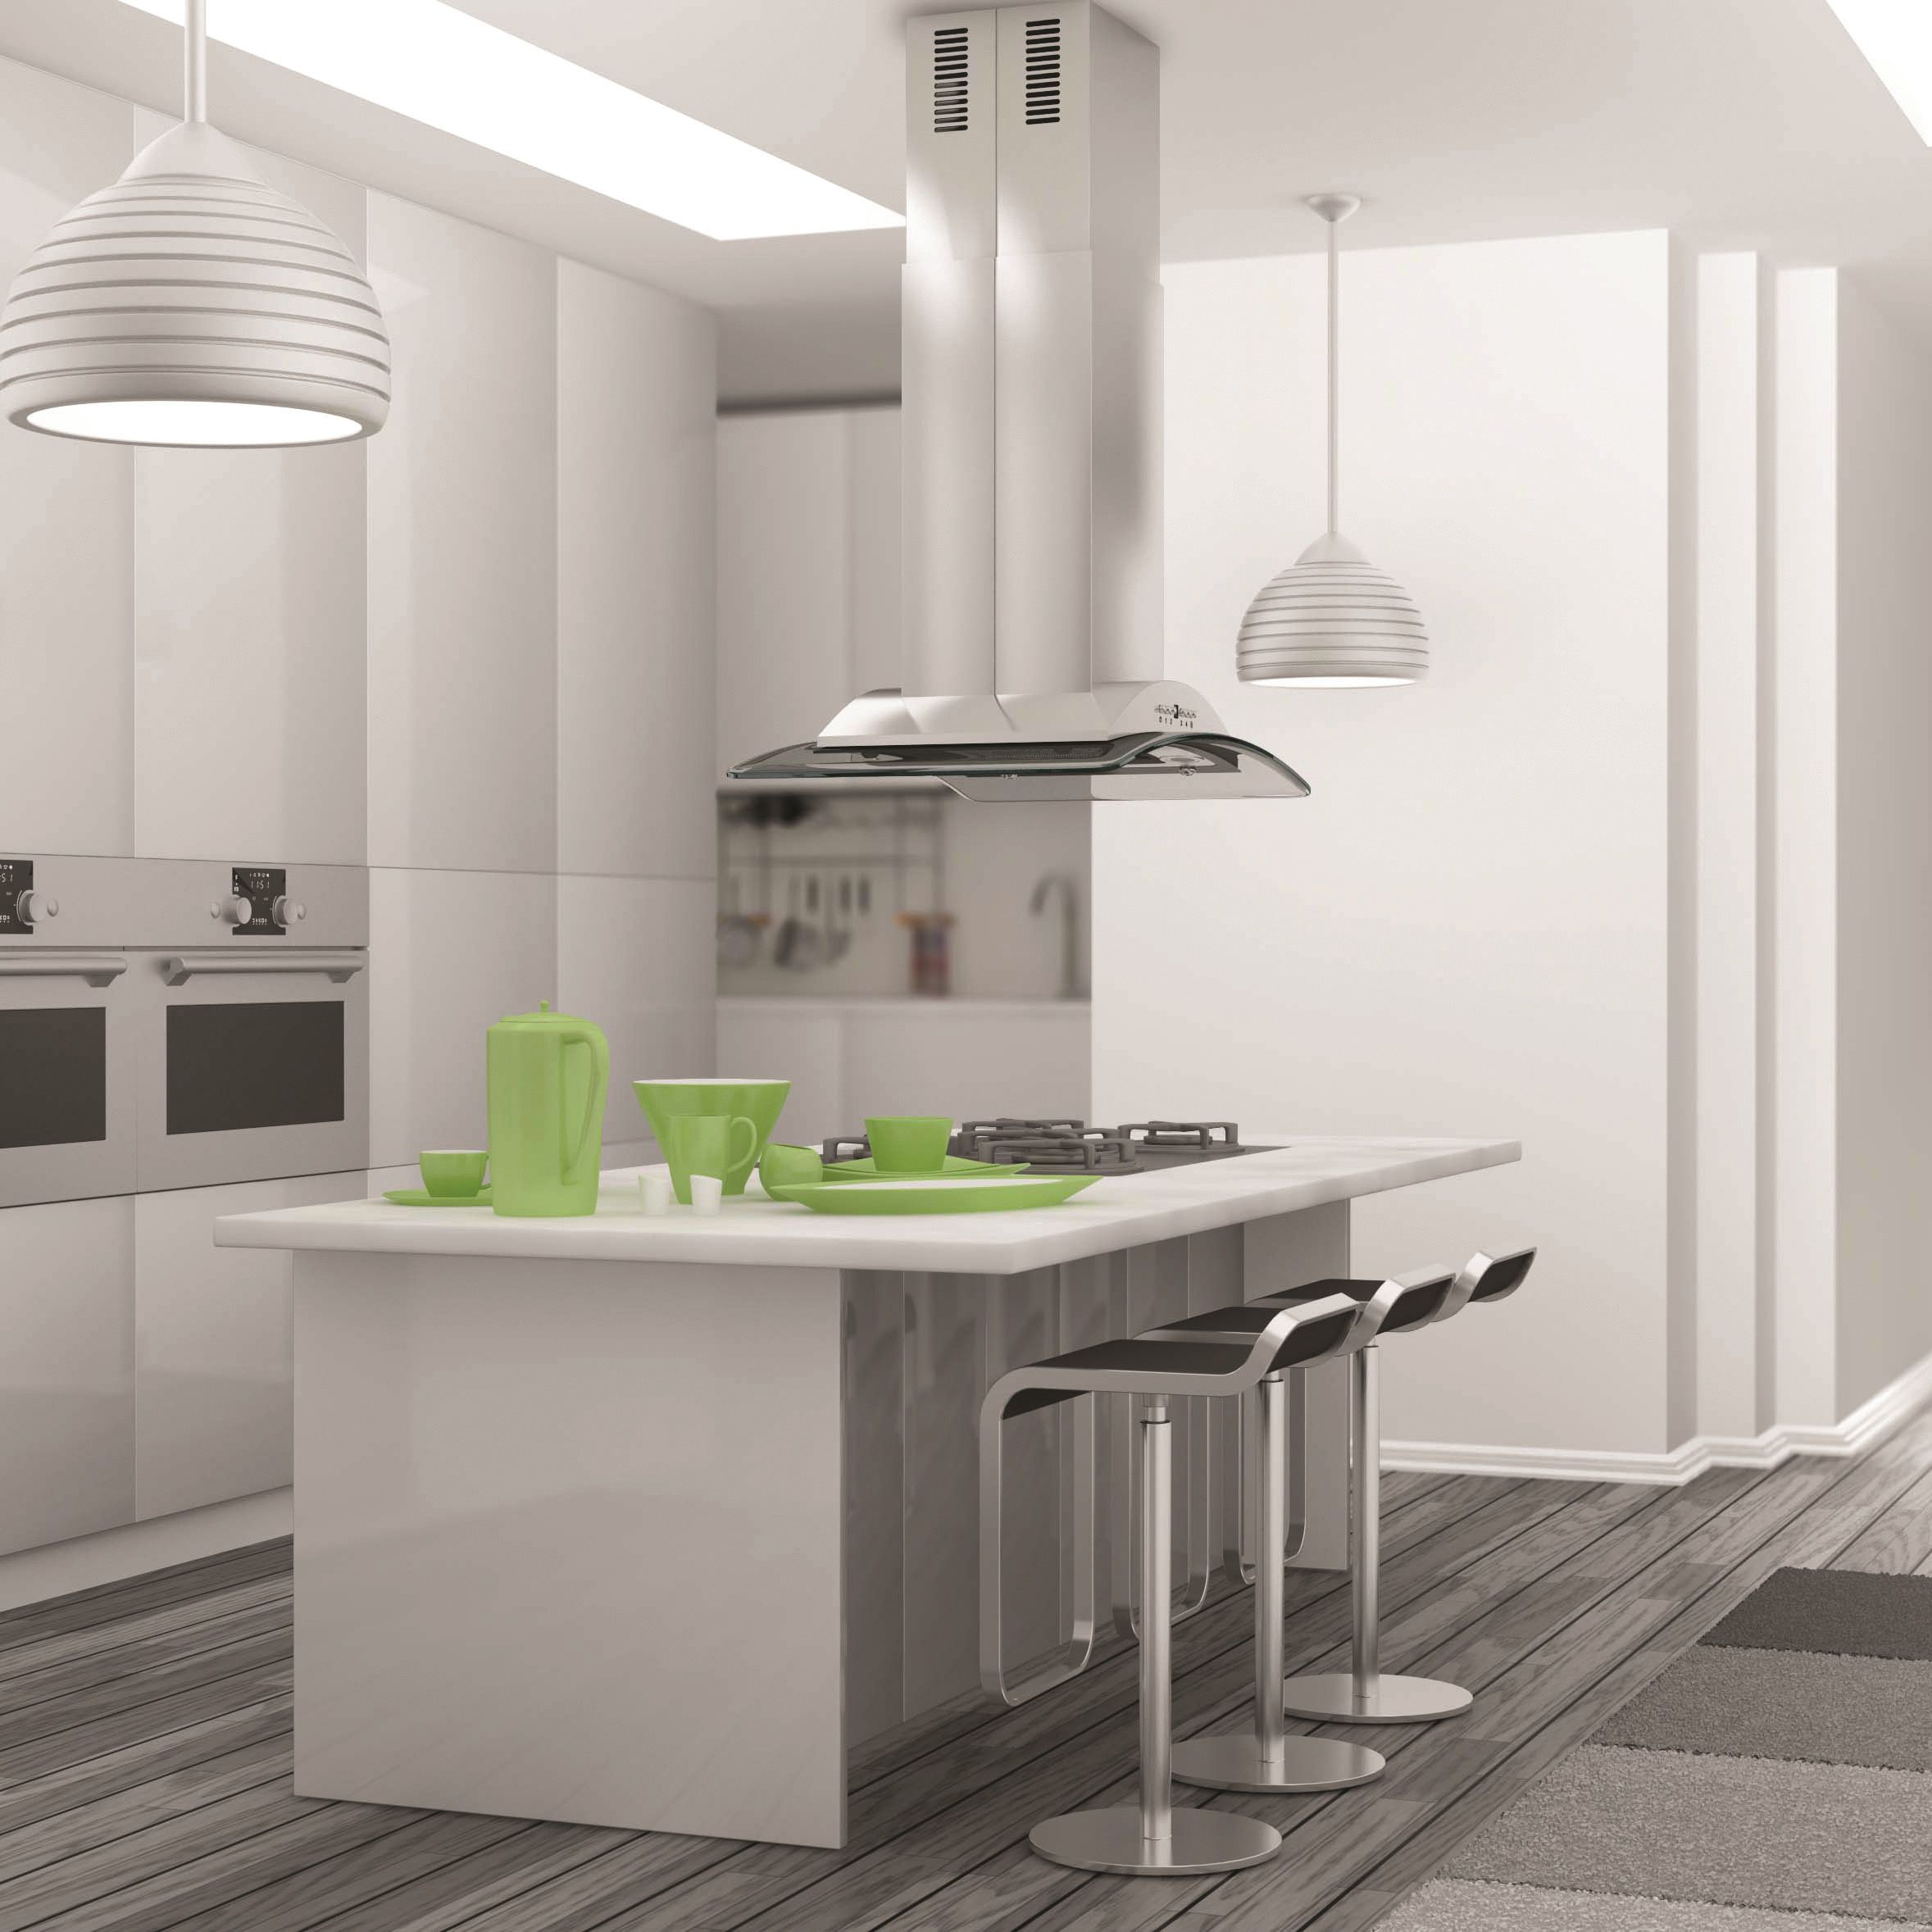 Going For The Modern Look In Your Kitchen Zline Has The Perfect